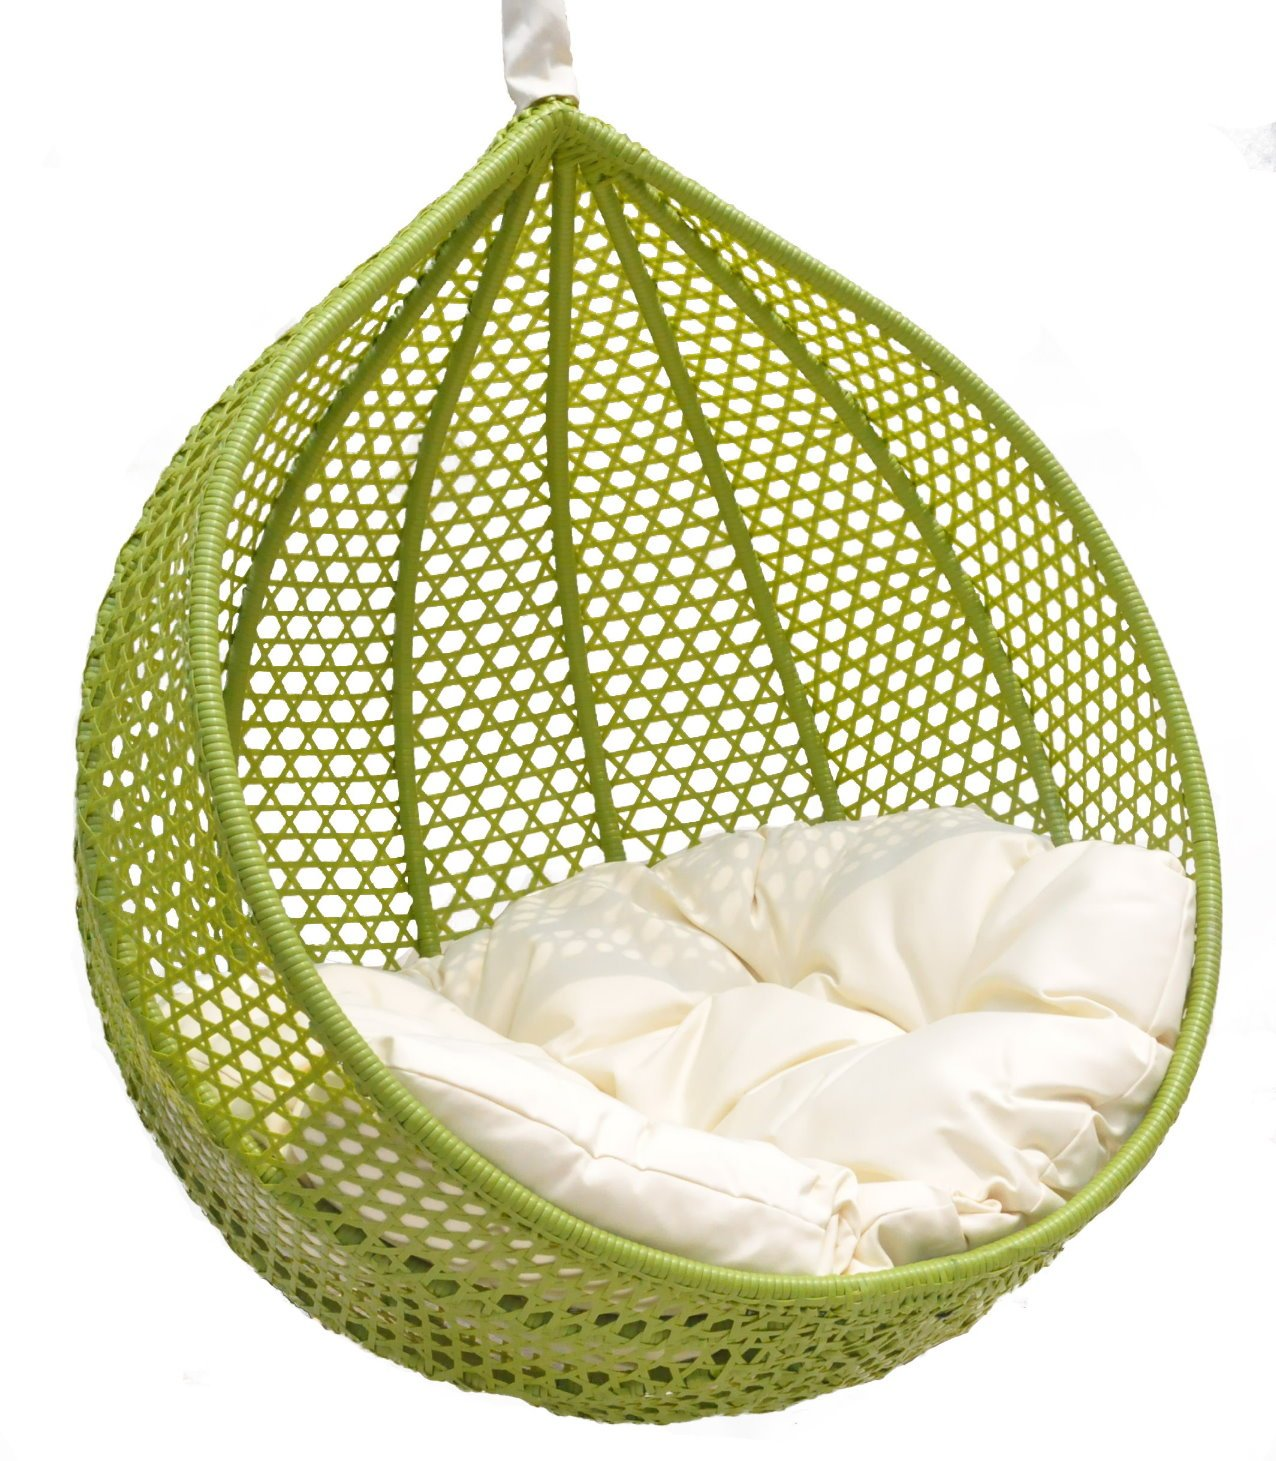 Comfortable Garden Hammock Chairs: Hanging and Swing